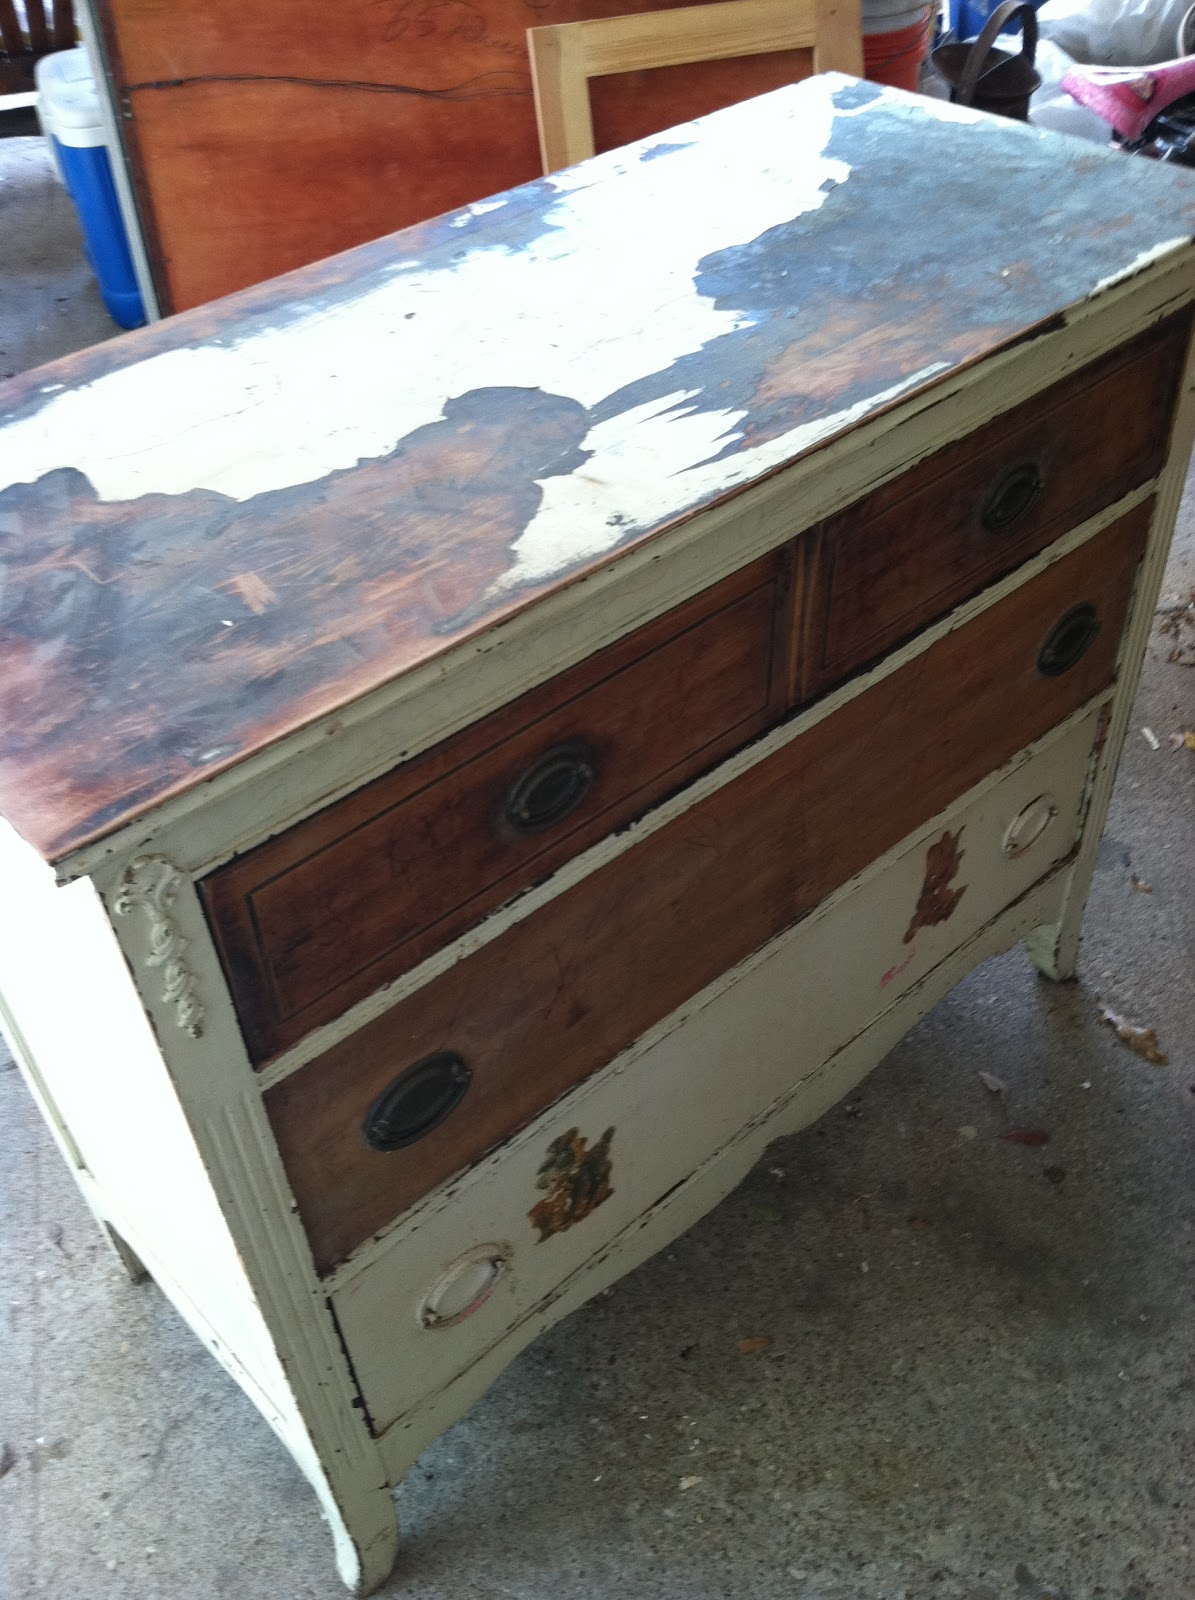 Can i stain over stain - You Can Spot Some Issues Paint Needs To Be Stripped And The Mahogany Stain Is Hard To Paint Over Unless You Use Black I Had Already Decided I Wanted To